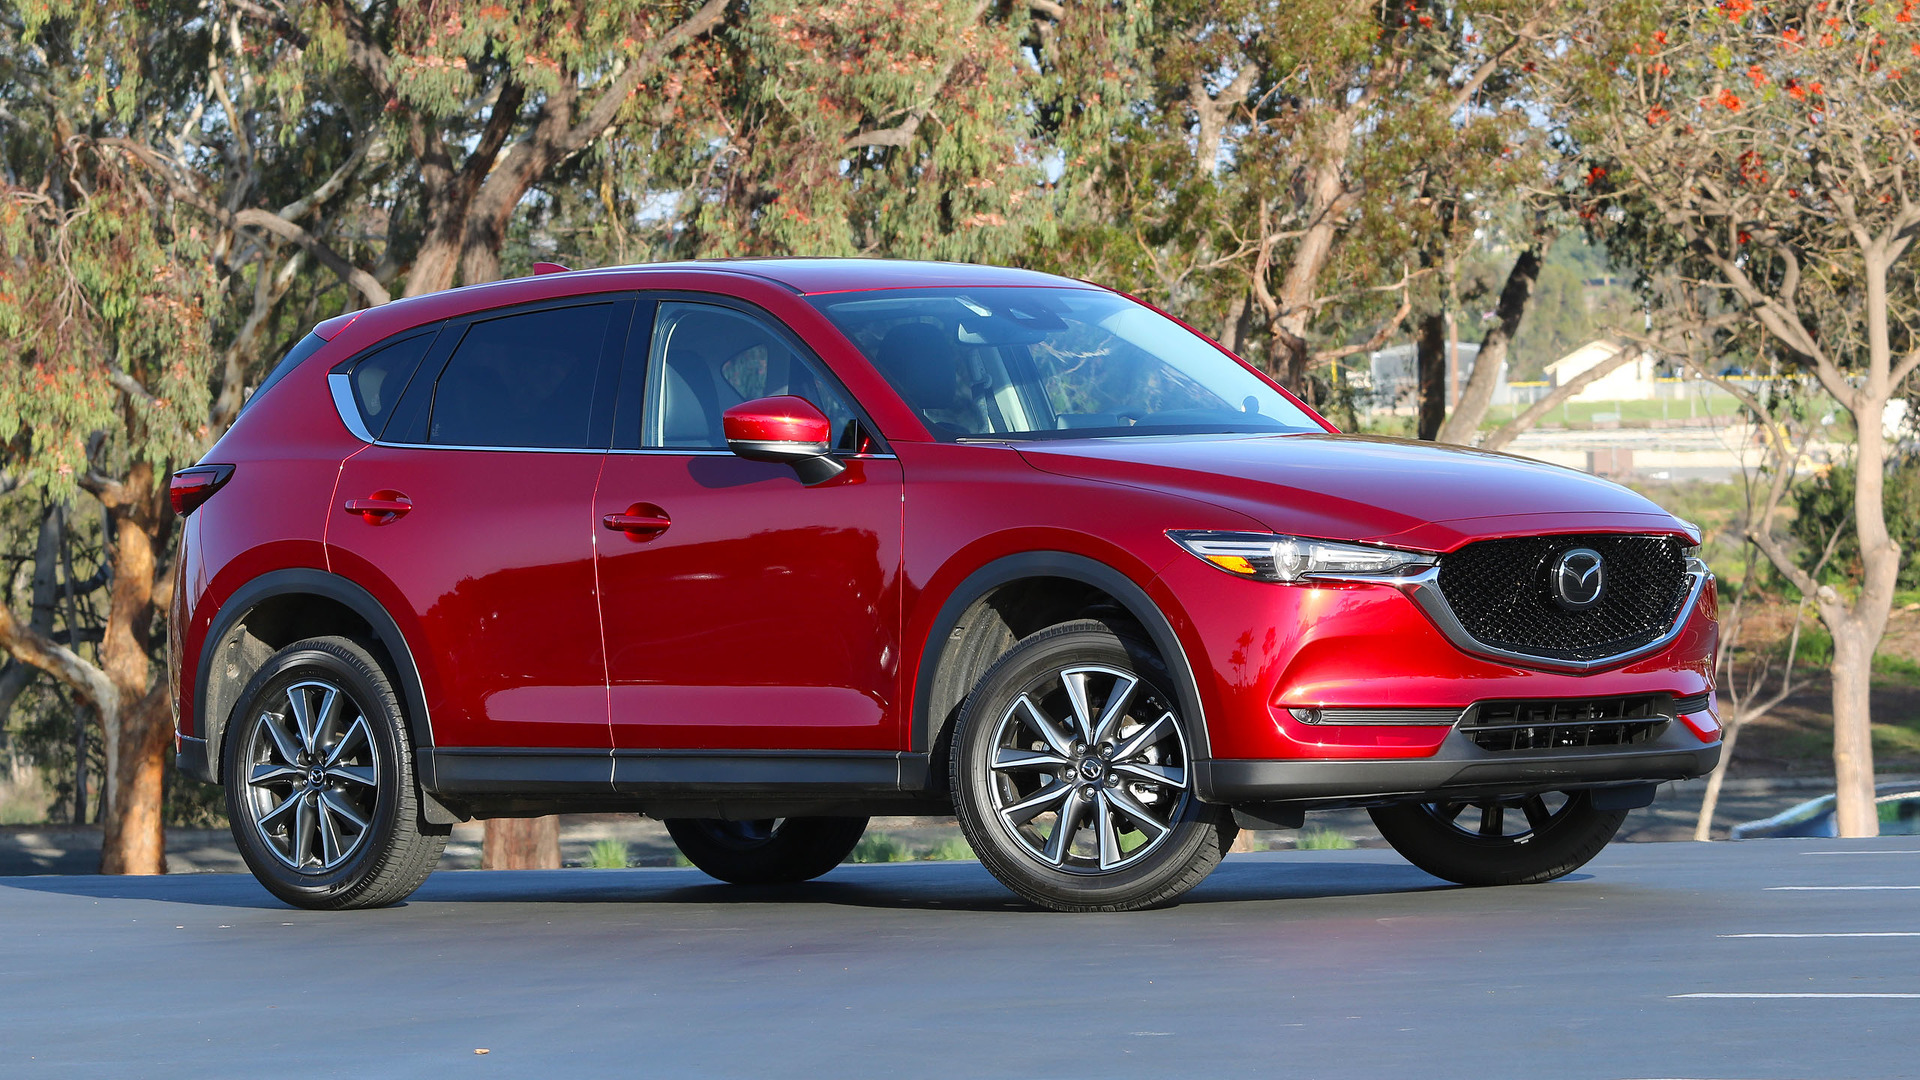 2017 Mazda Cx 5 First Drive Now With Fewer Downsides